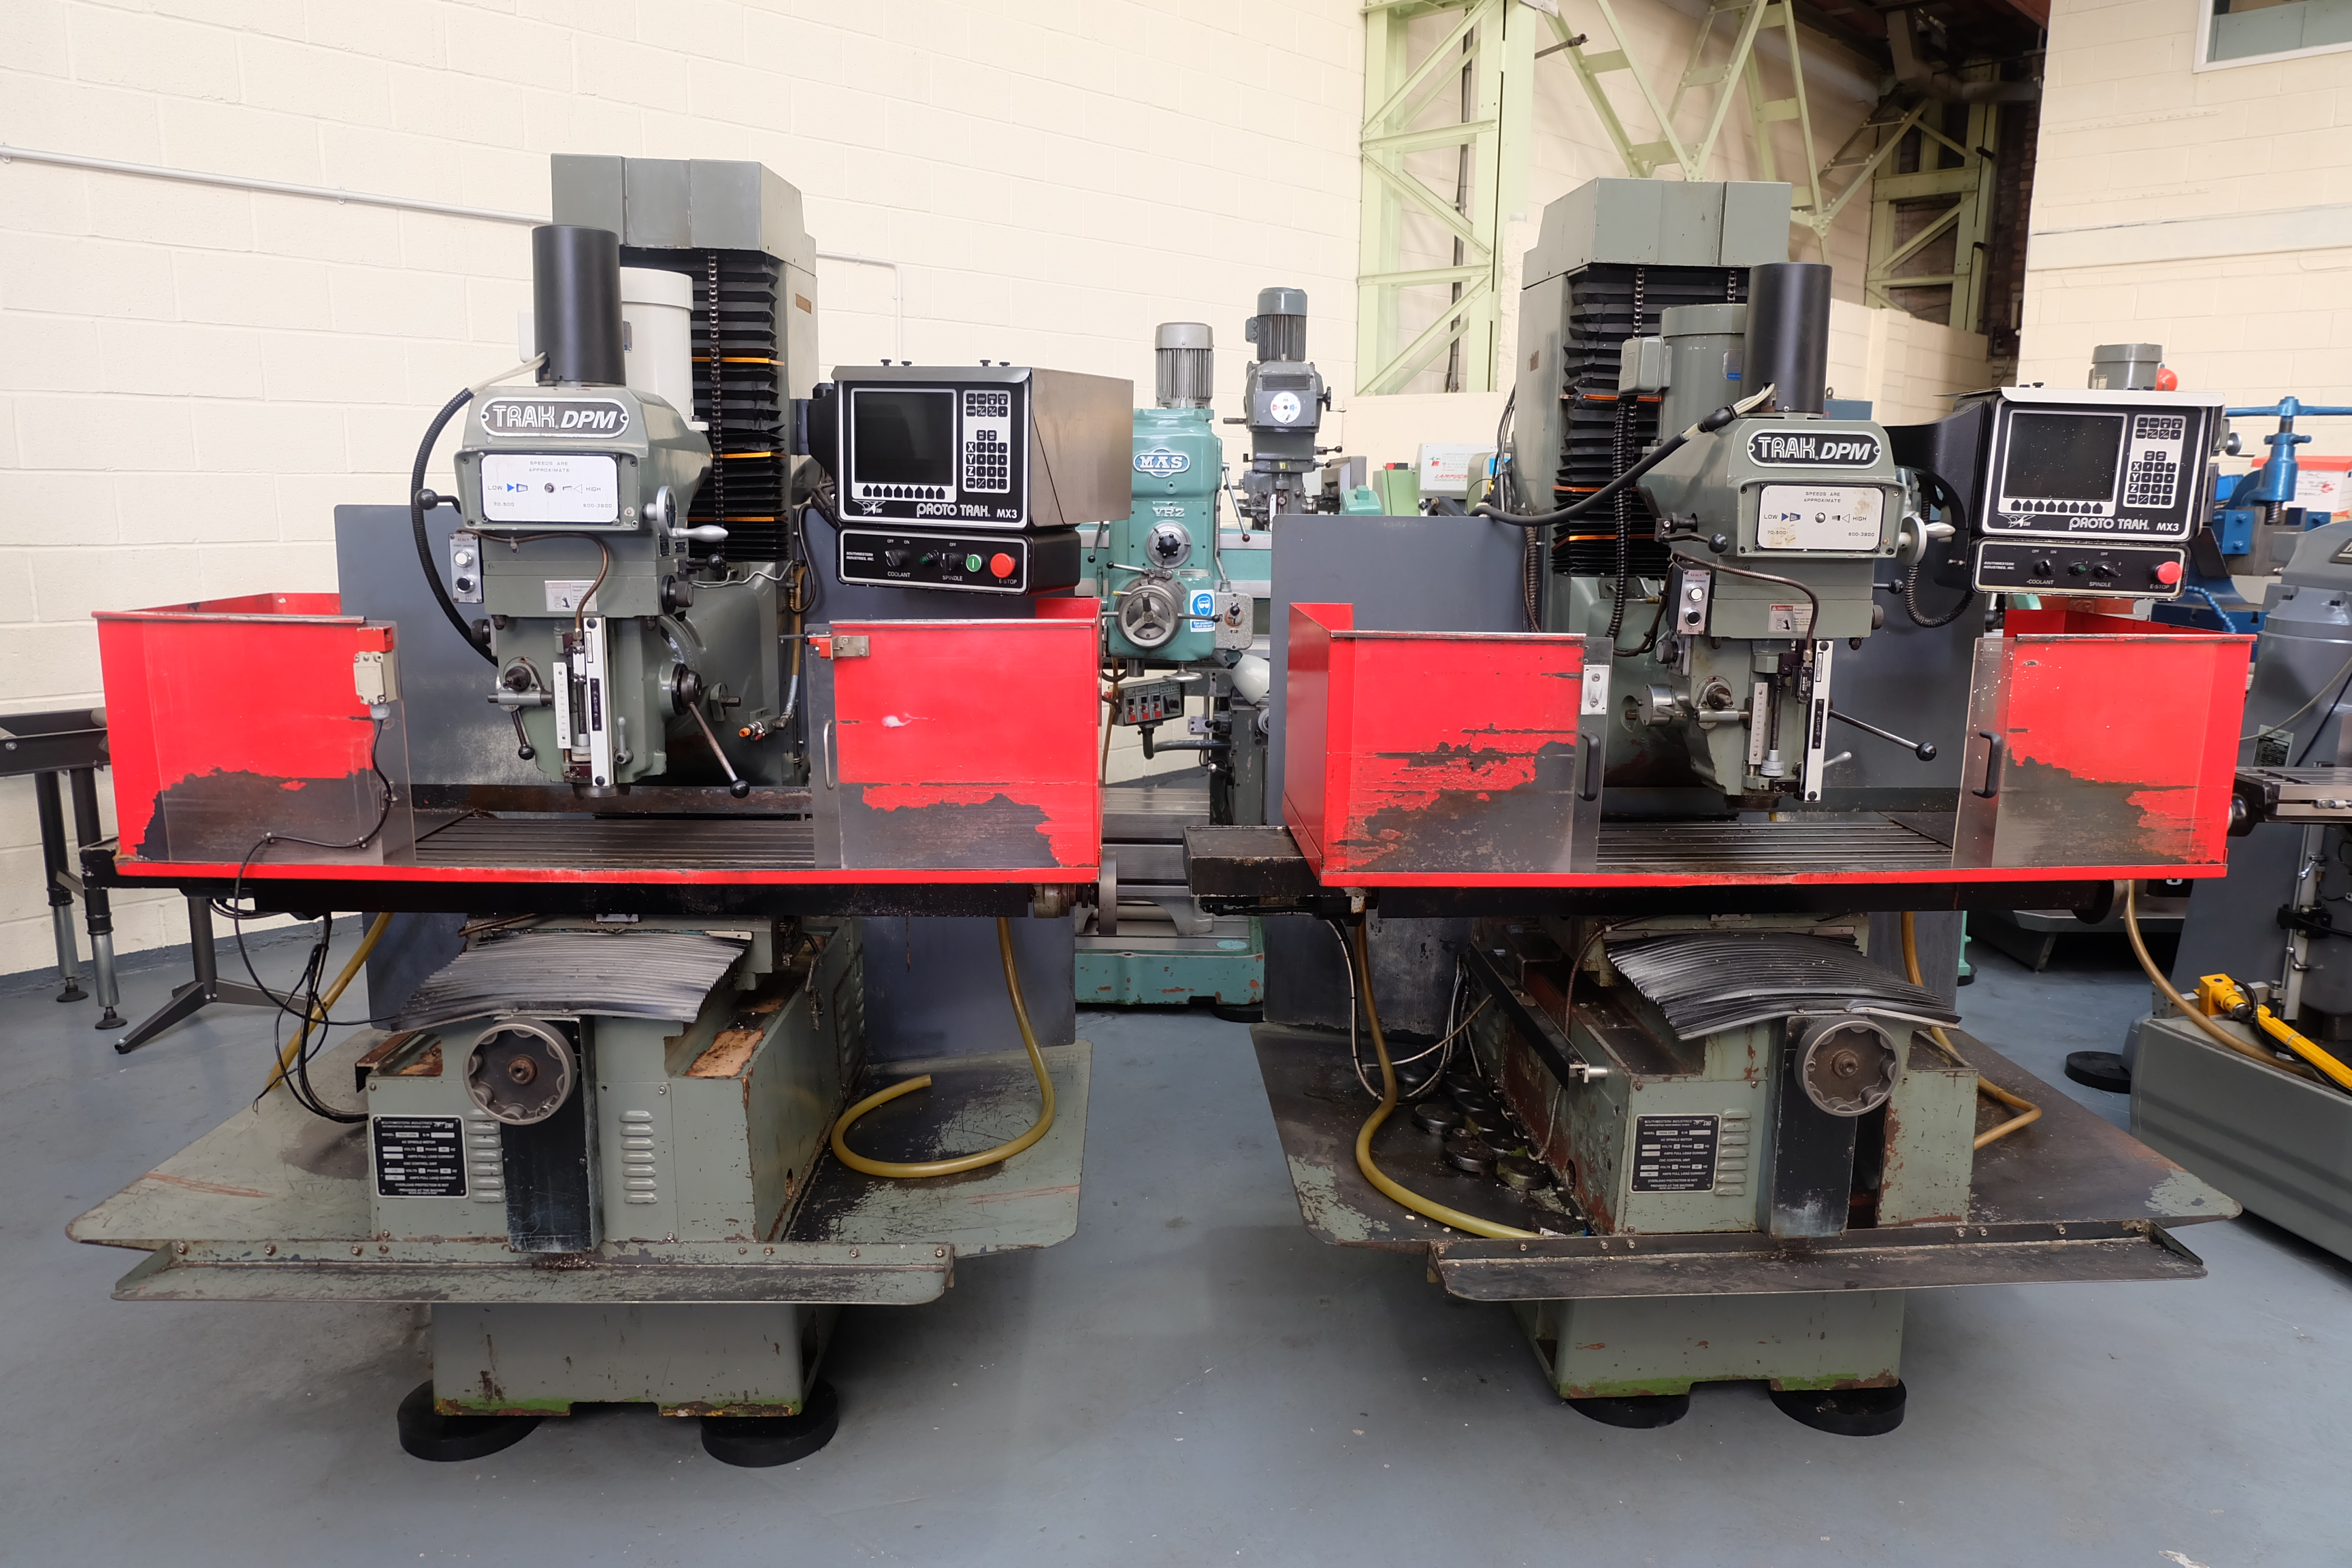 "2 x XYZ Type DPM Milling Machines Table 42"" x 12 1/2"". Prototrak MX3 Control. For Spares or Repair."